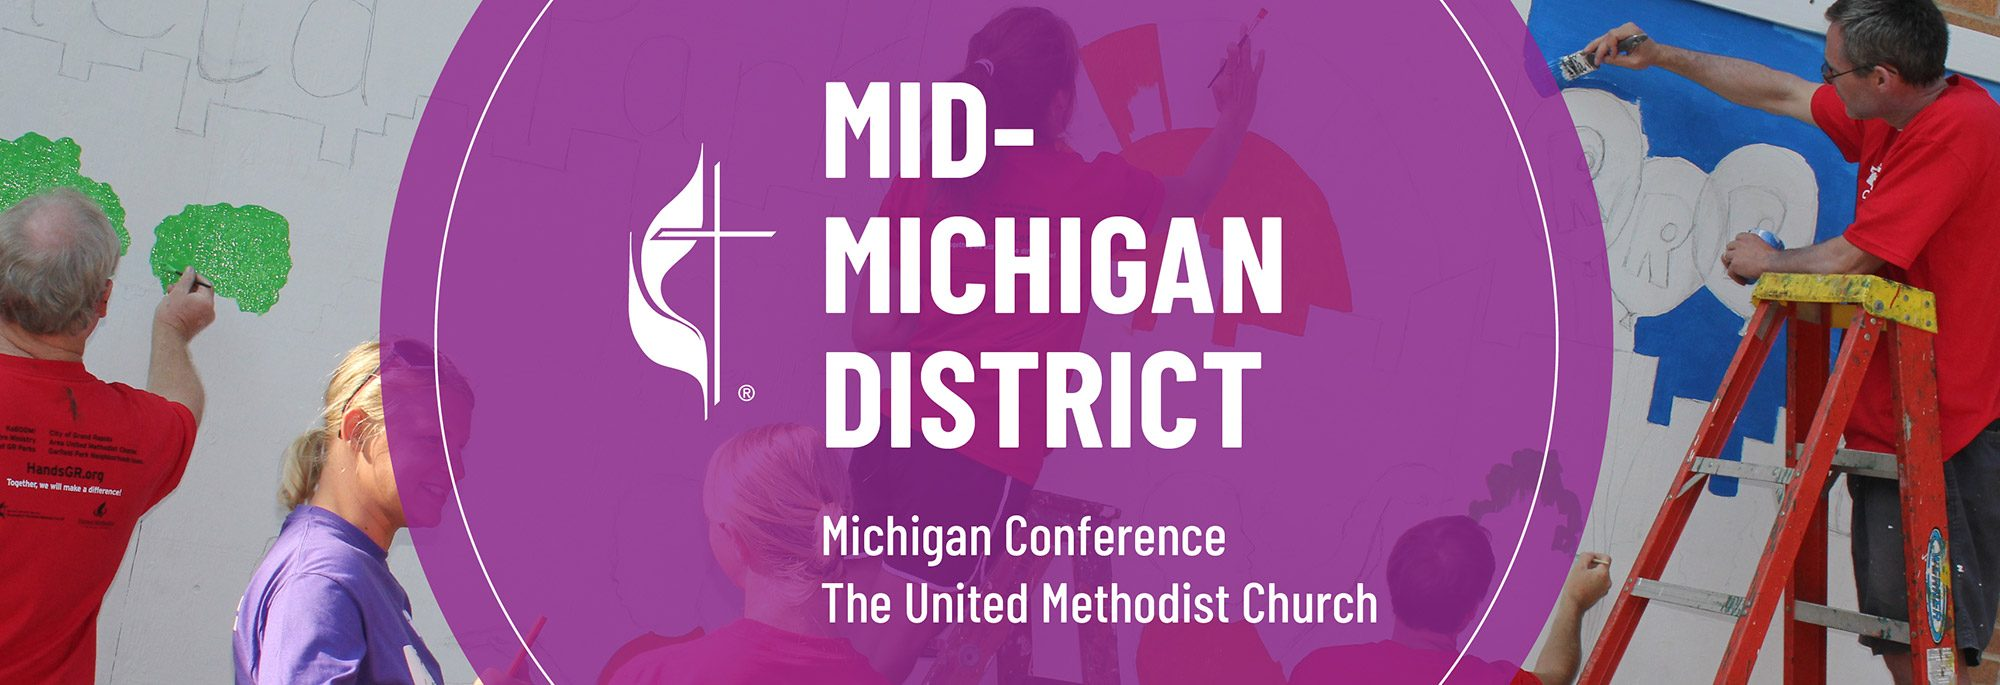 Mid-Michigan District Logo